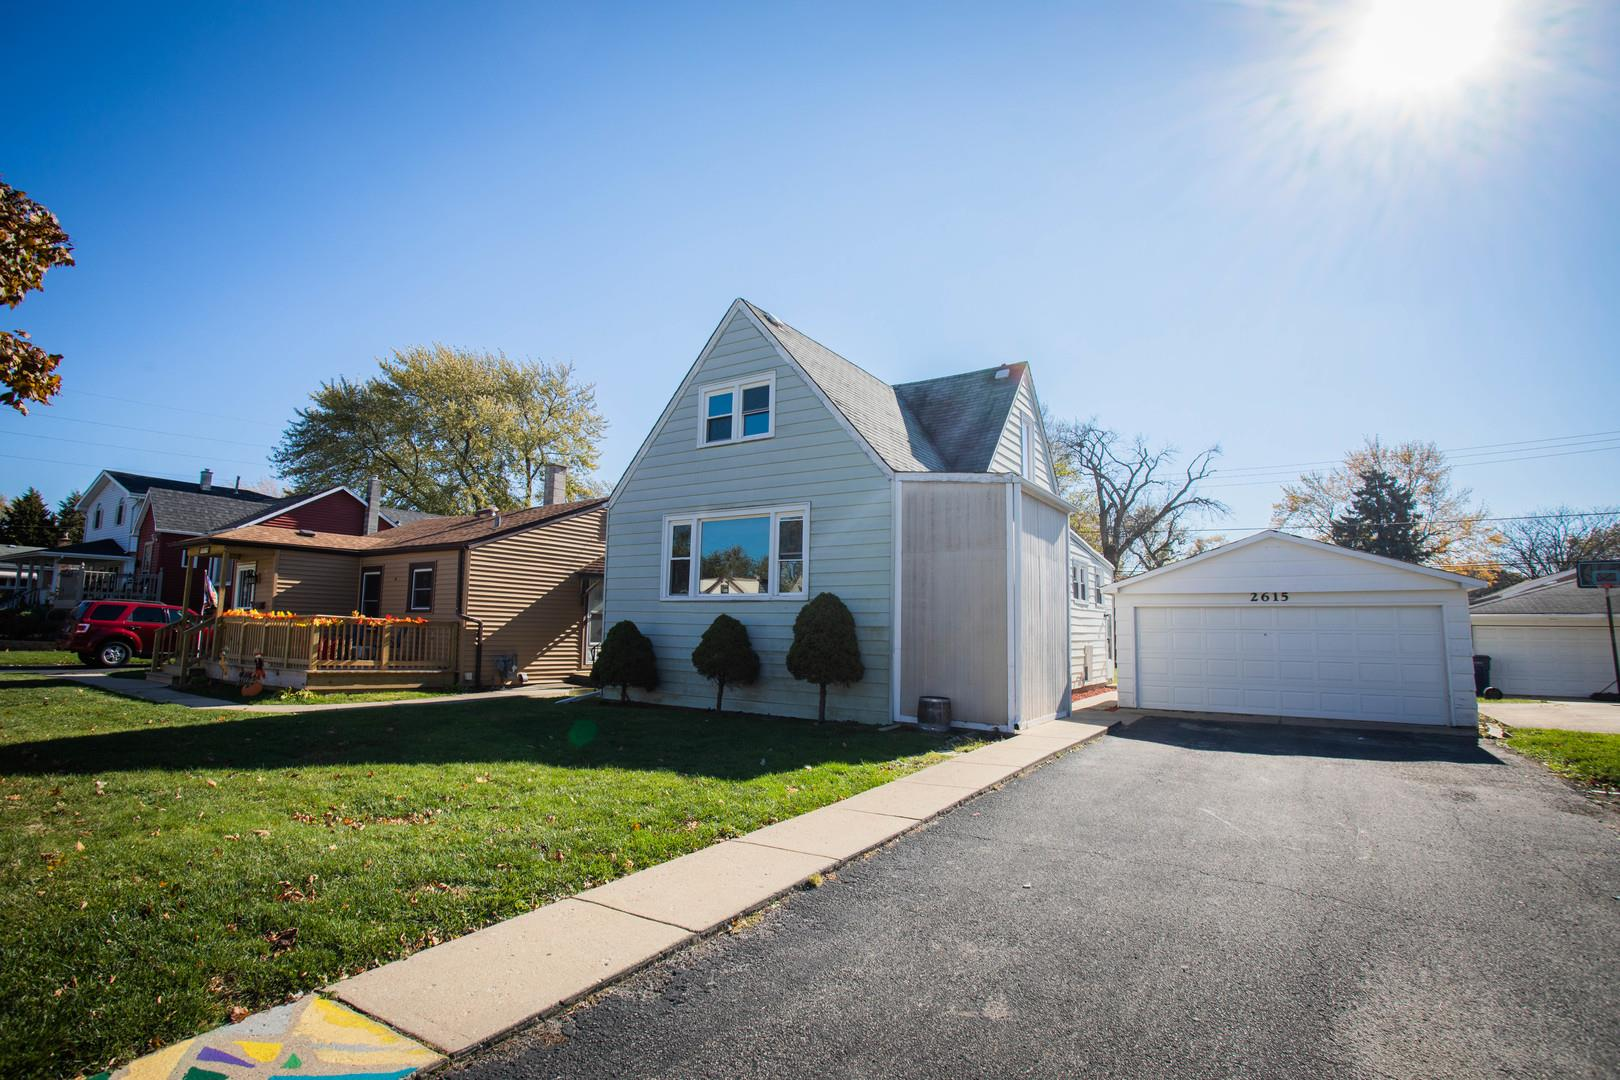 2615 w 98th Place, Evergreen Park, IL 60805 - #: 10922595